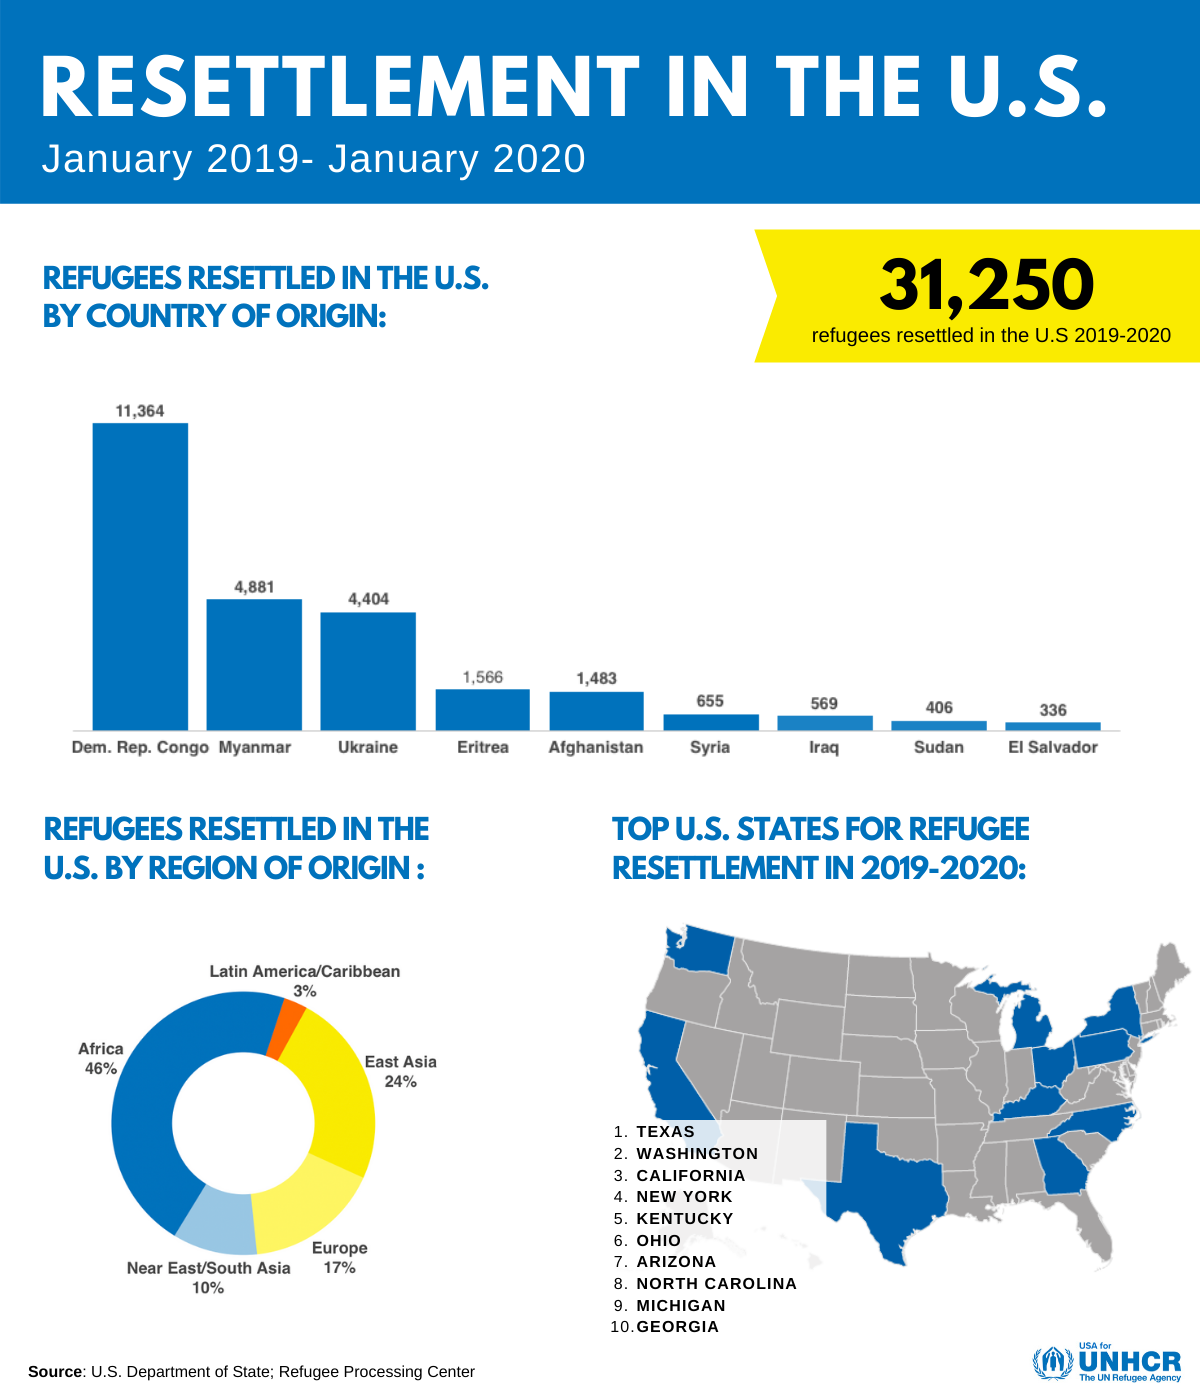 resettlement-in-the-us-facts